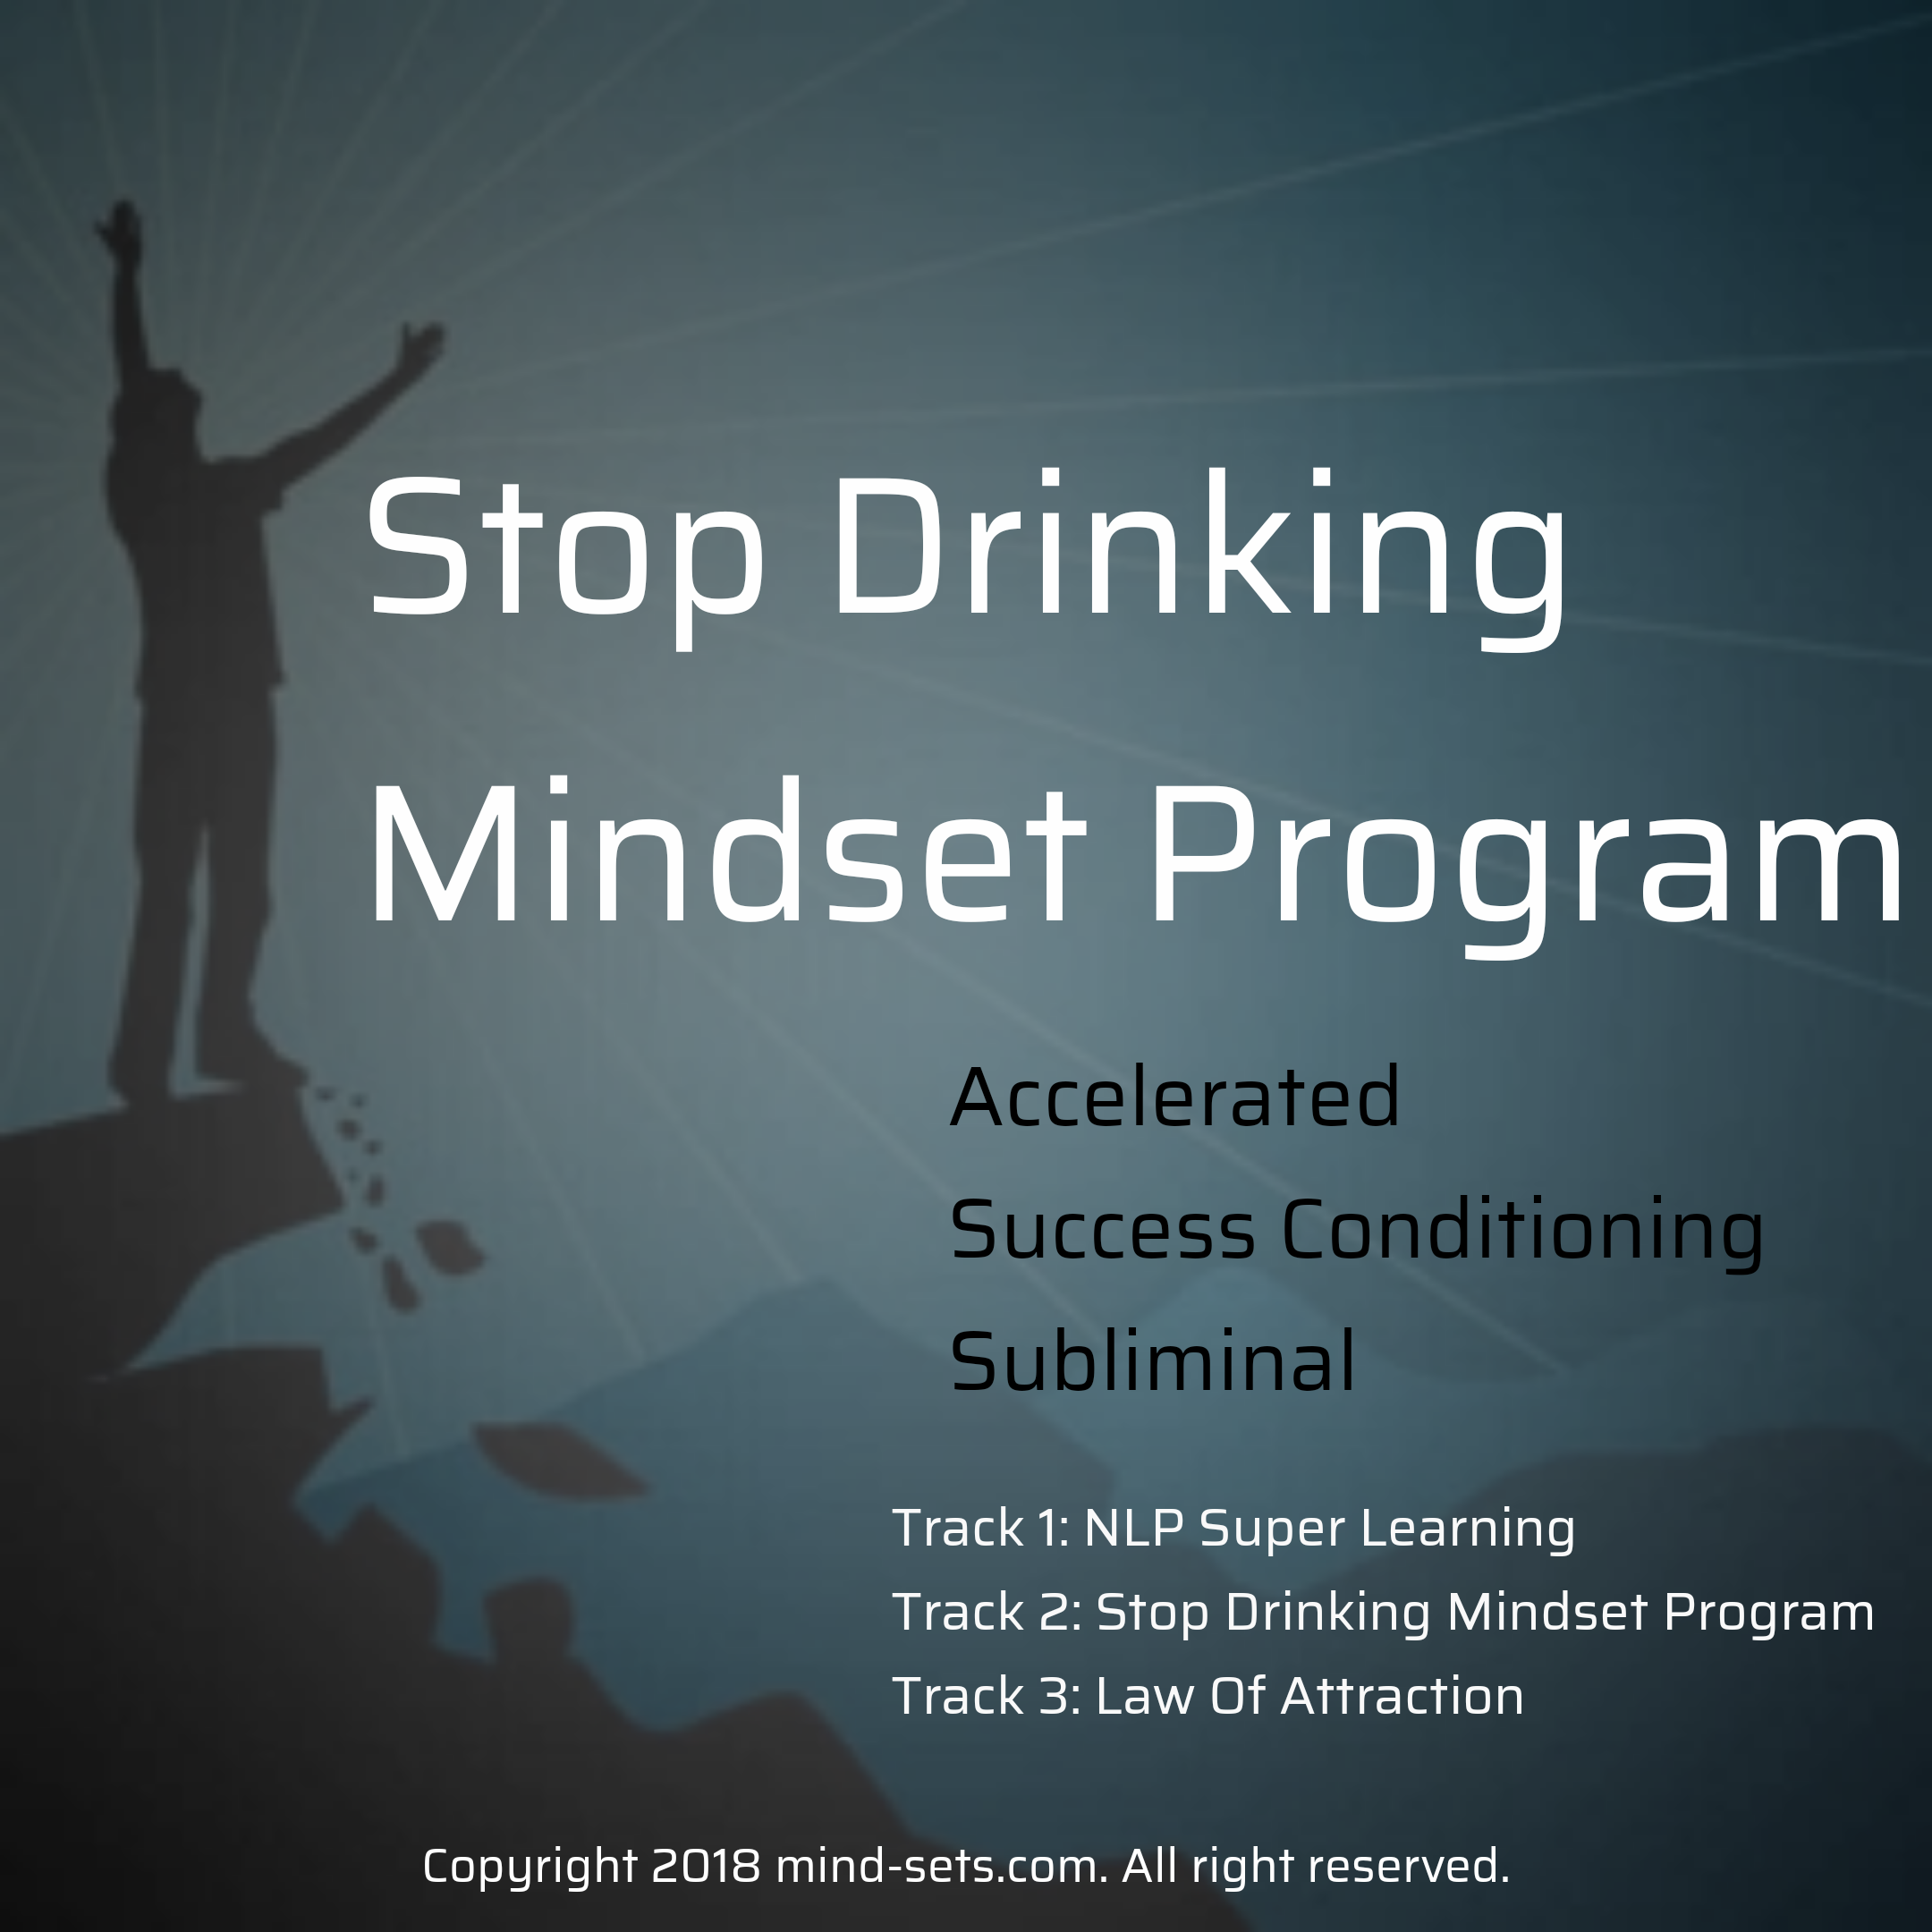 Stop Drinking Mindset Program